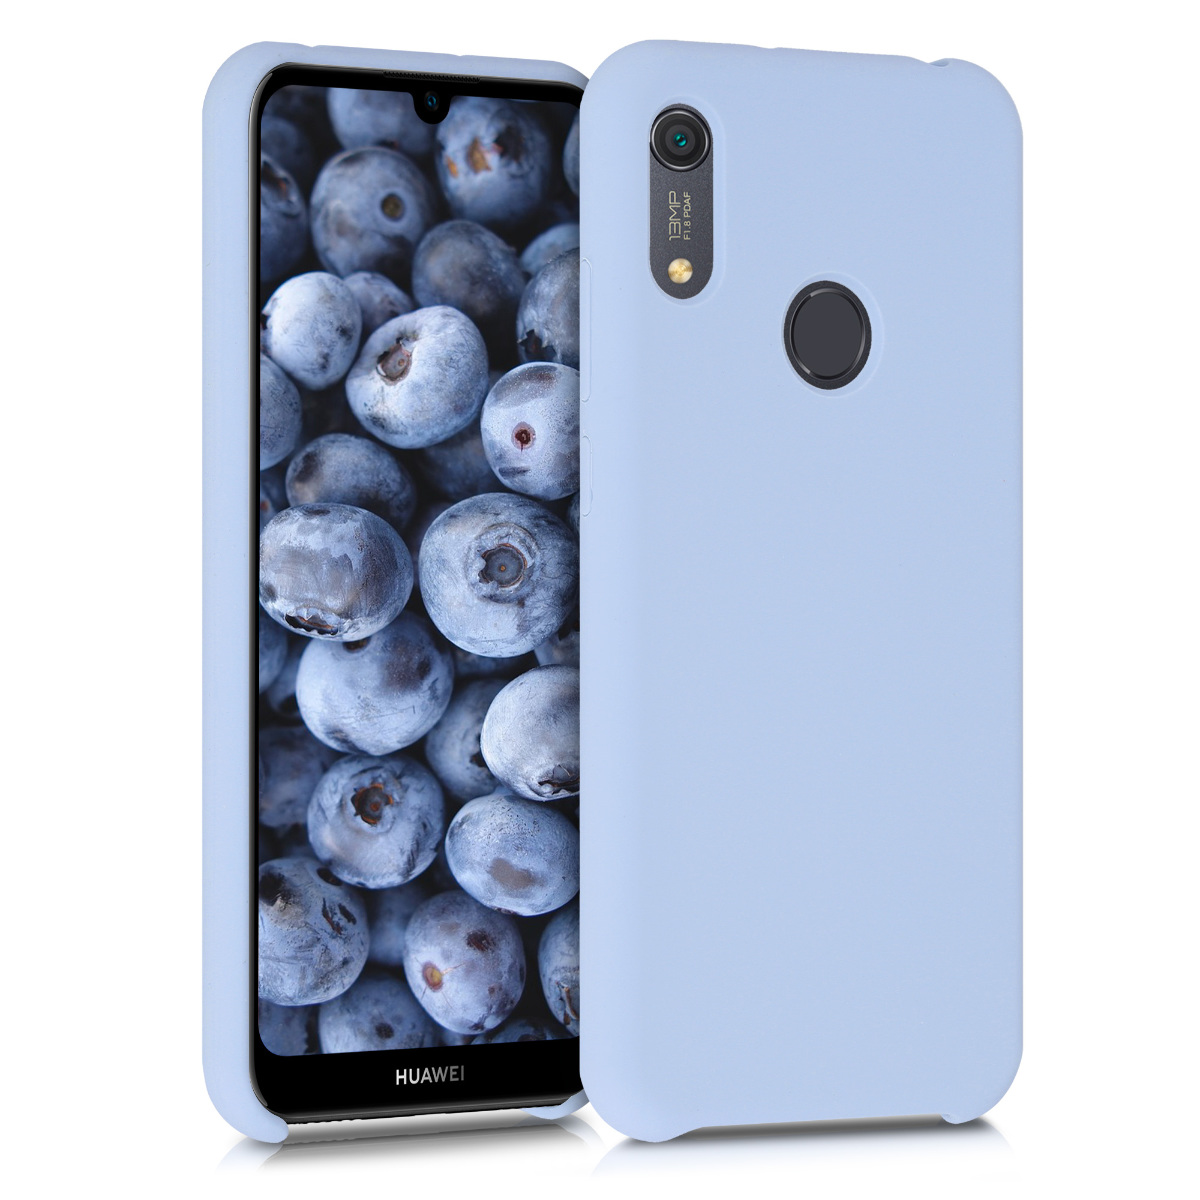 KW Θήκη Σιλικόνης Huawei Y6s 2019 - Soft Flexible Rubber Protective Cover - Light Blue Matte (52410.58)